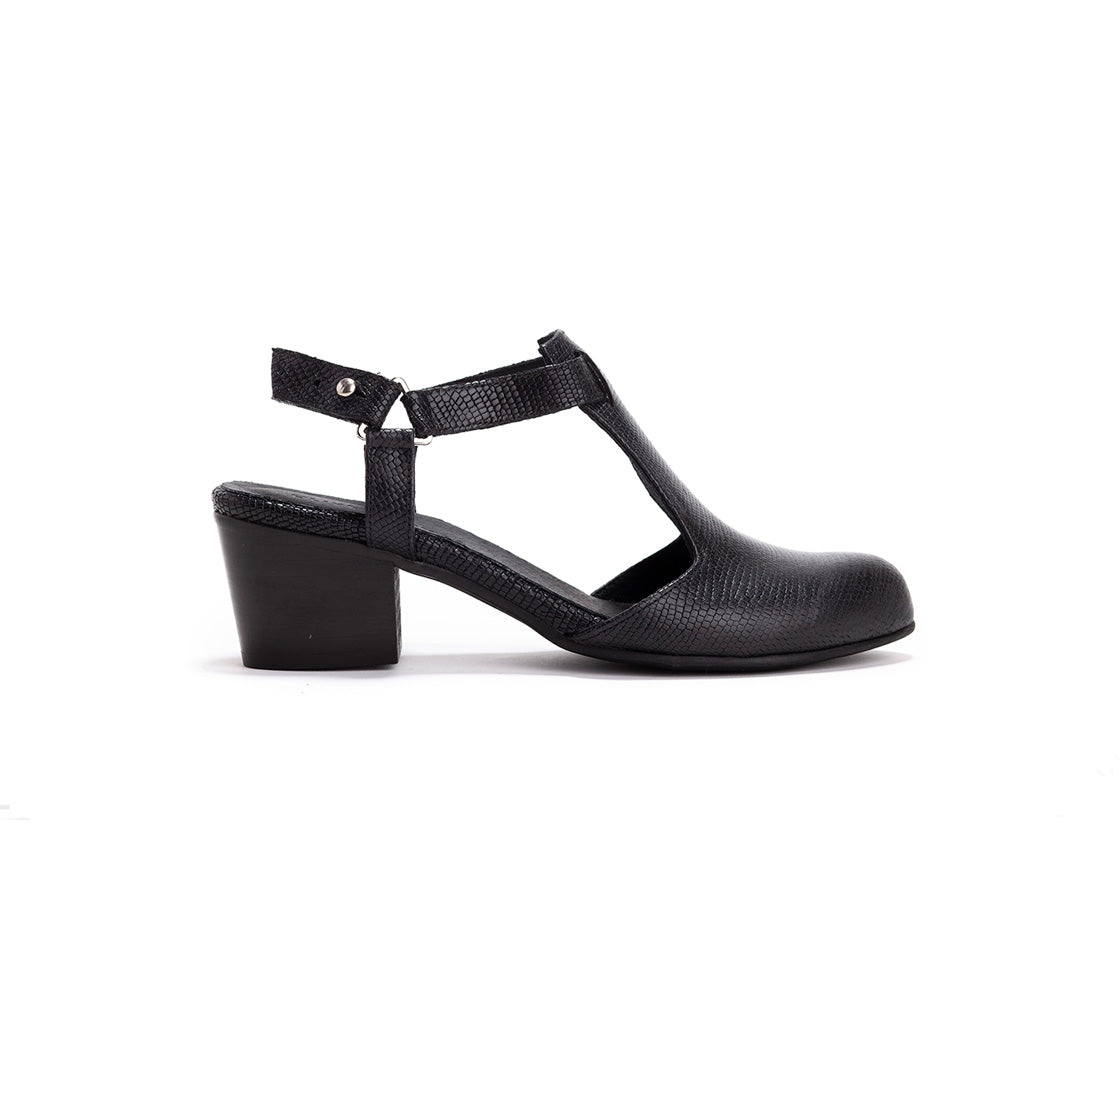 Audrey - T-Bar Sandals